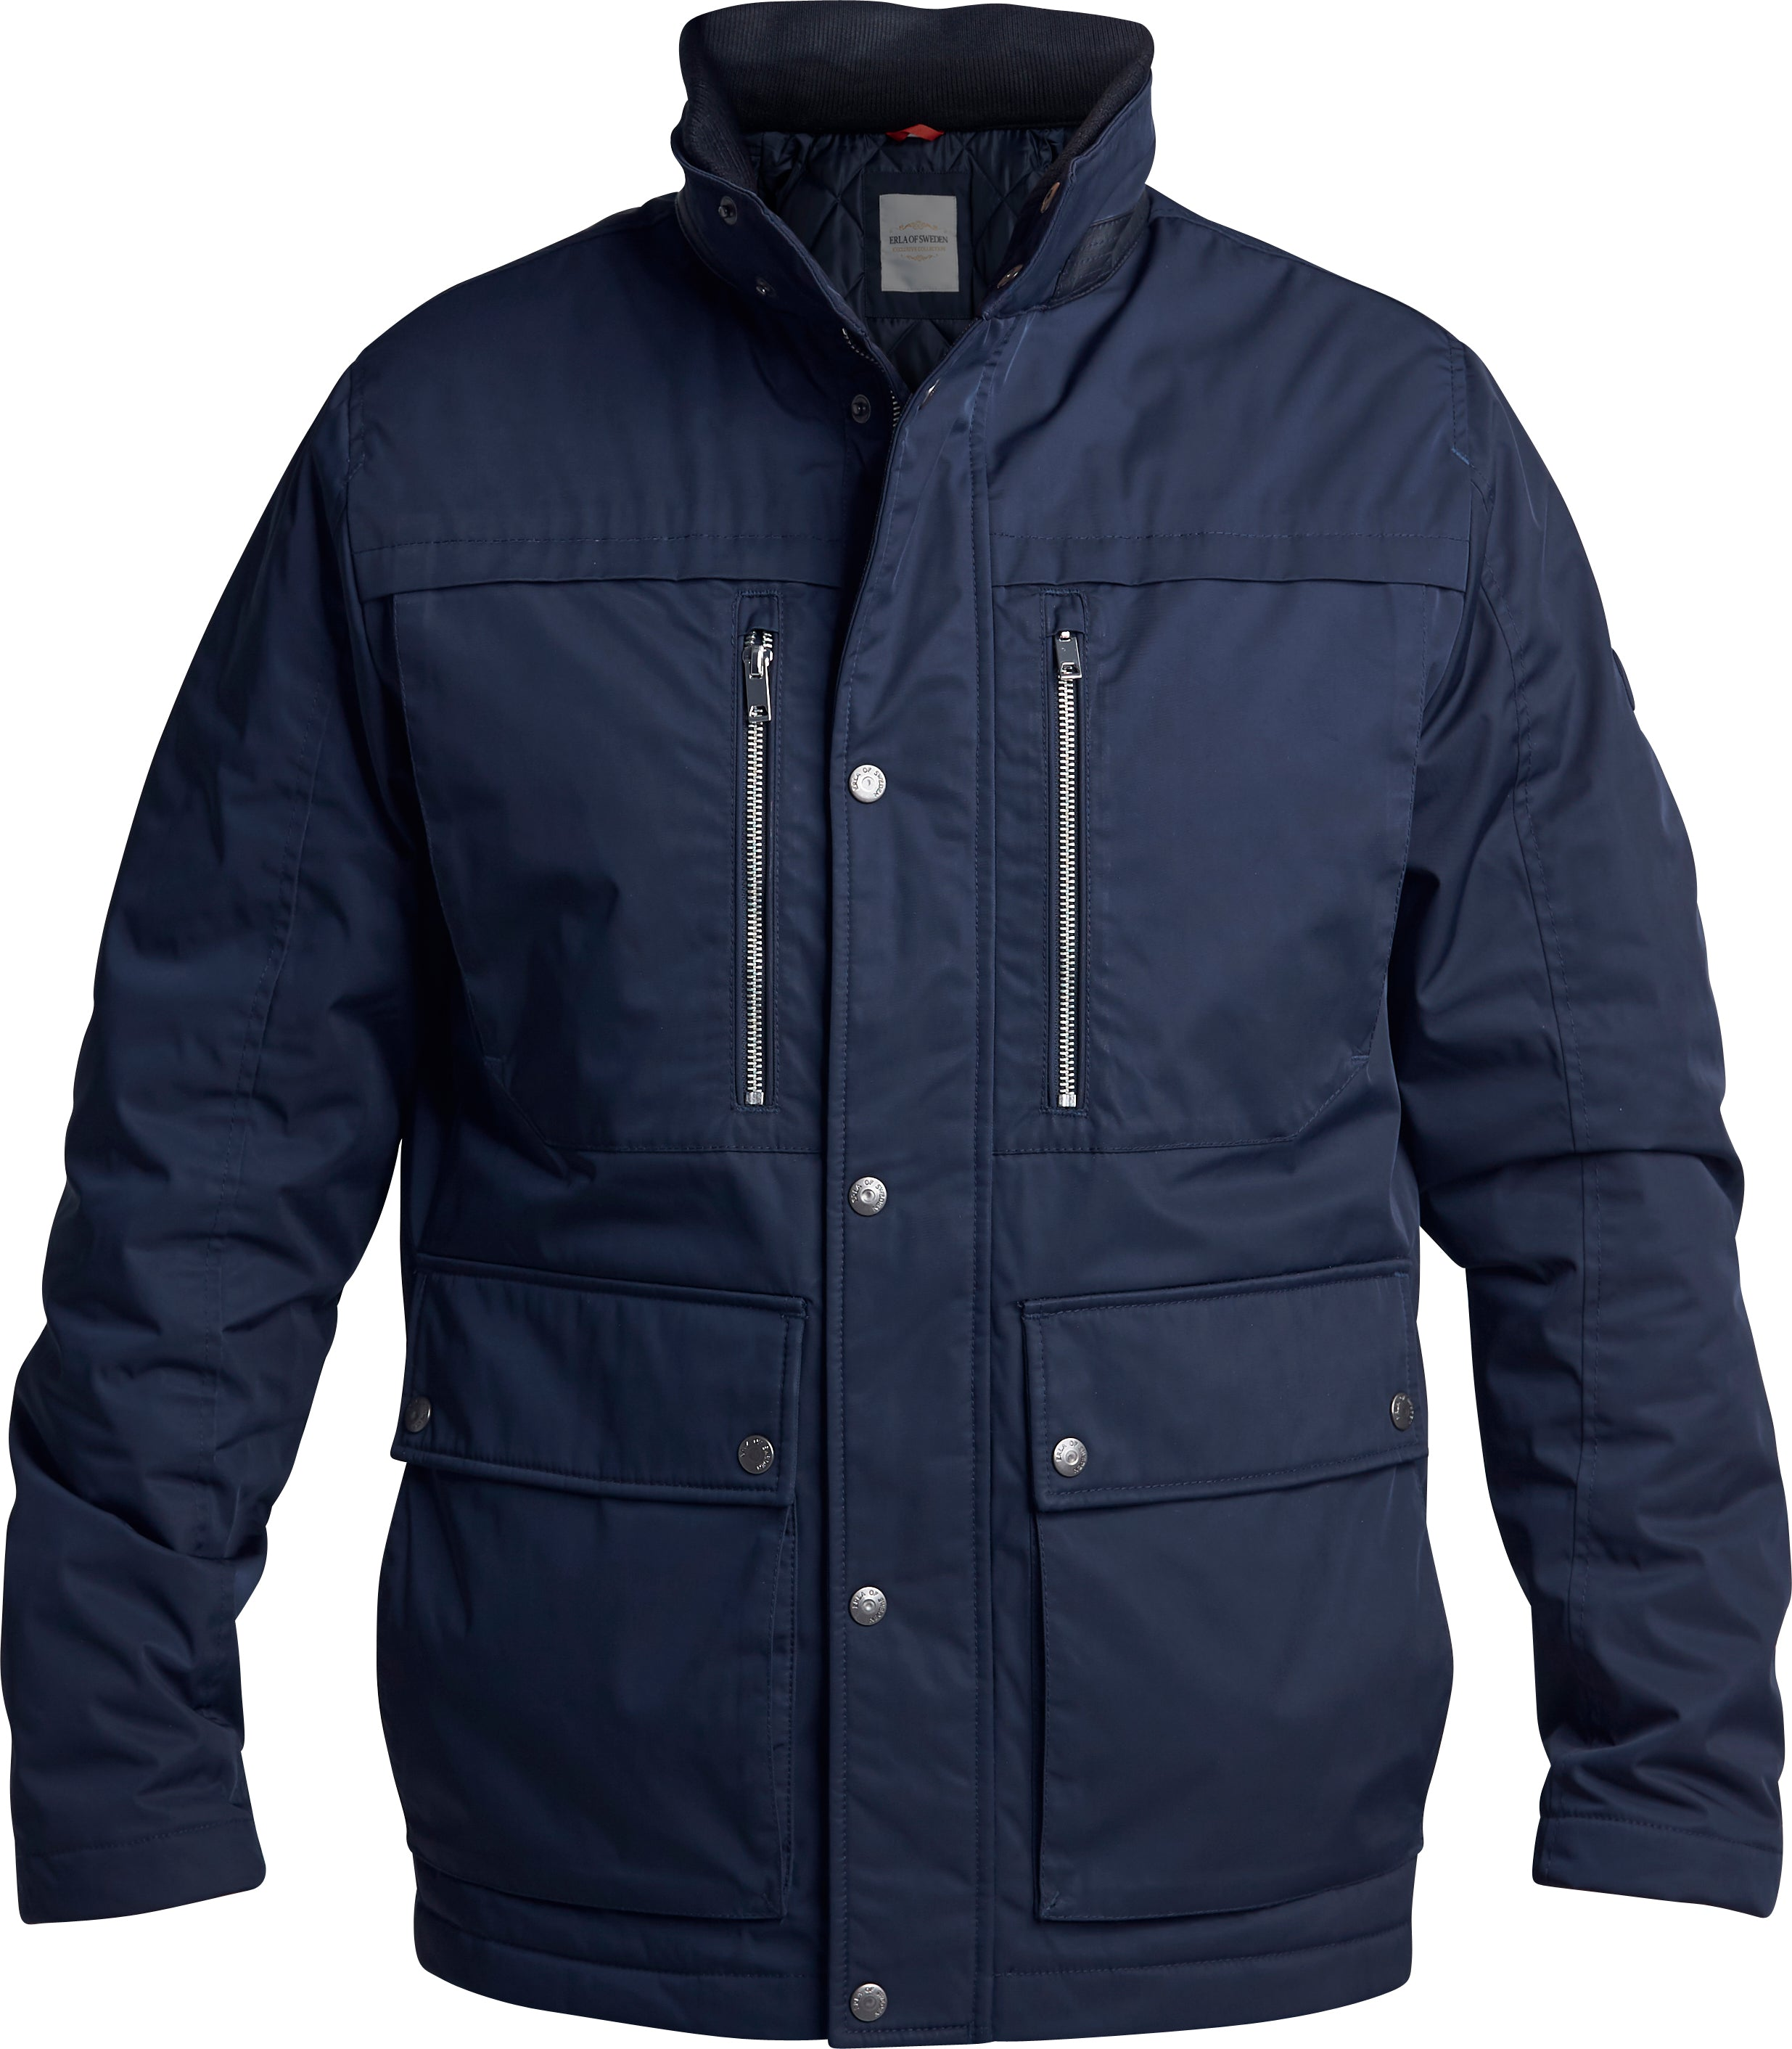 Fodrad Field jacket i Marint